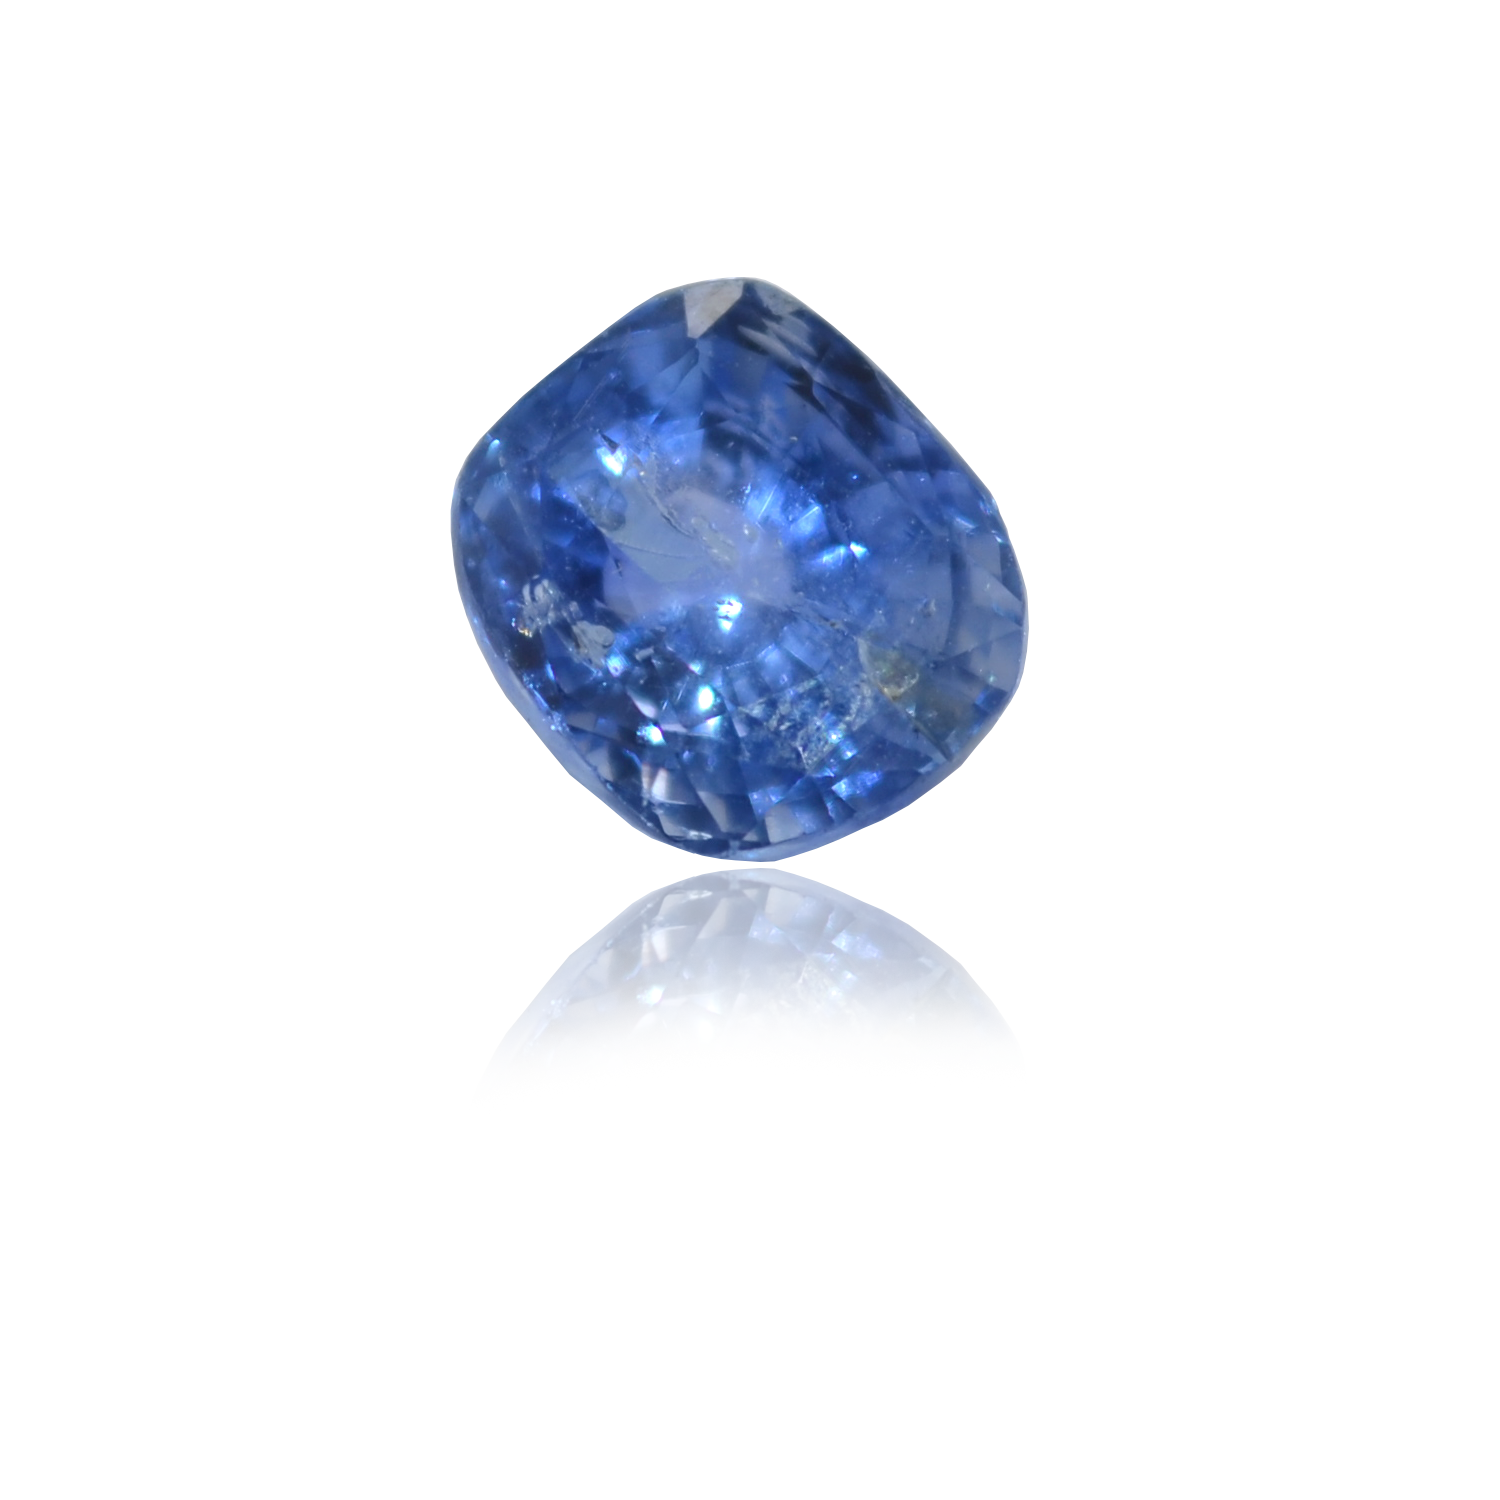 4.90 CARAT, RECTANGULER MIXED CUT NATURAL BLUE SAPPHIRE